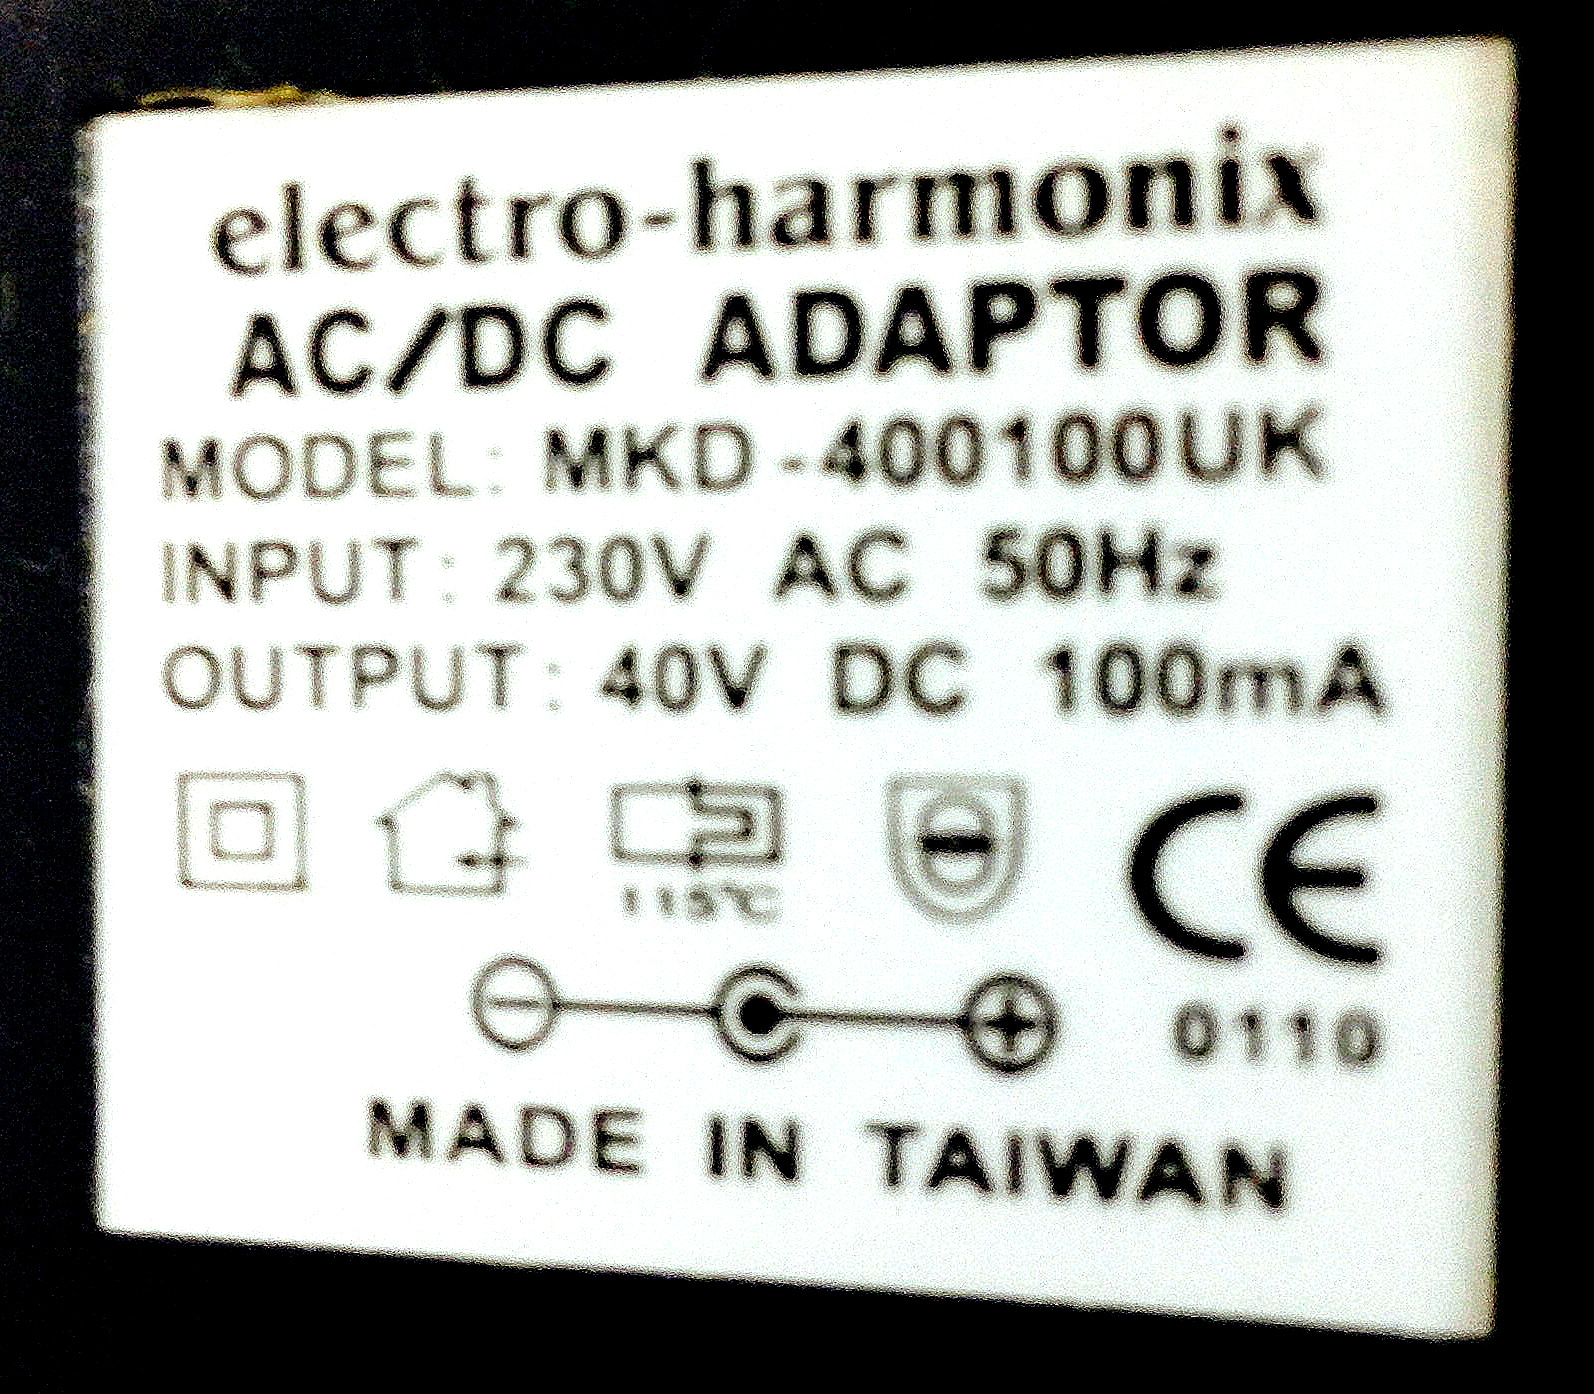 Electro Harmonix Uk 40v Dc 100ma Power Supply